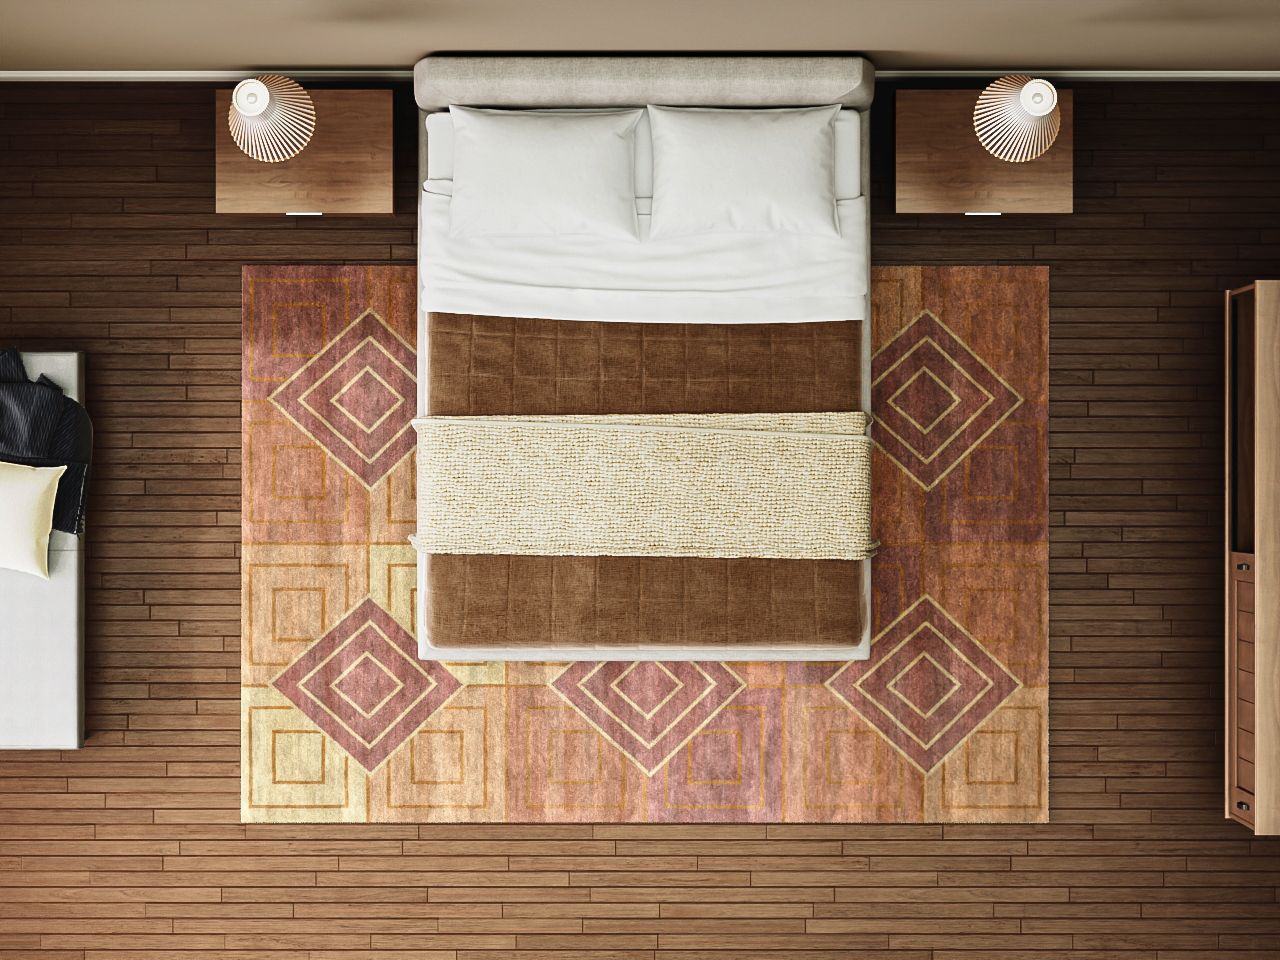 Rug sizes for Queen Size beds